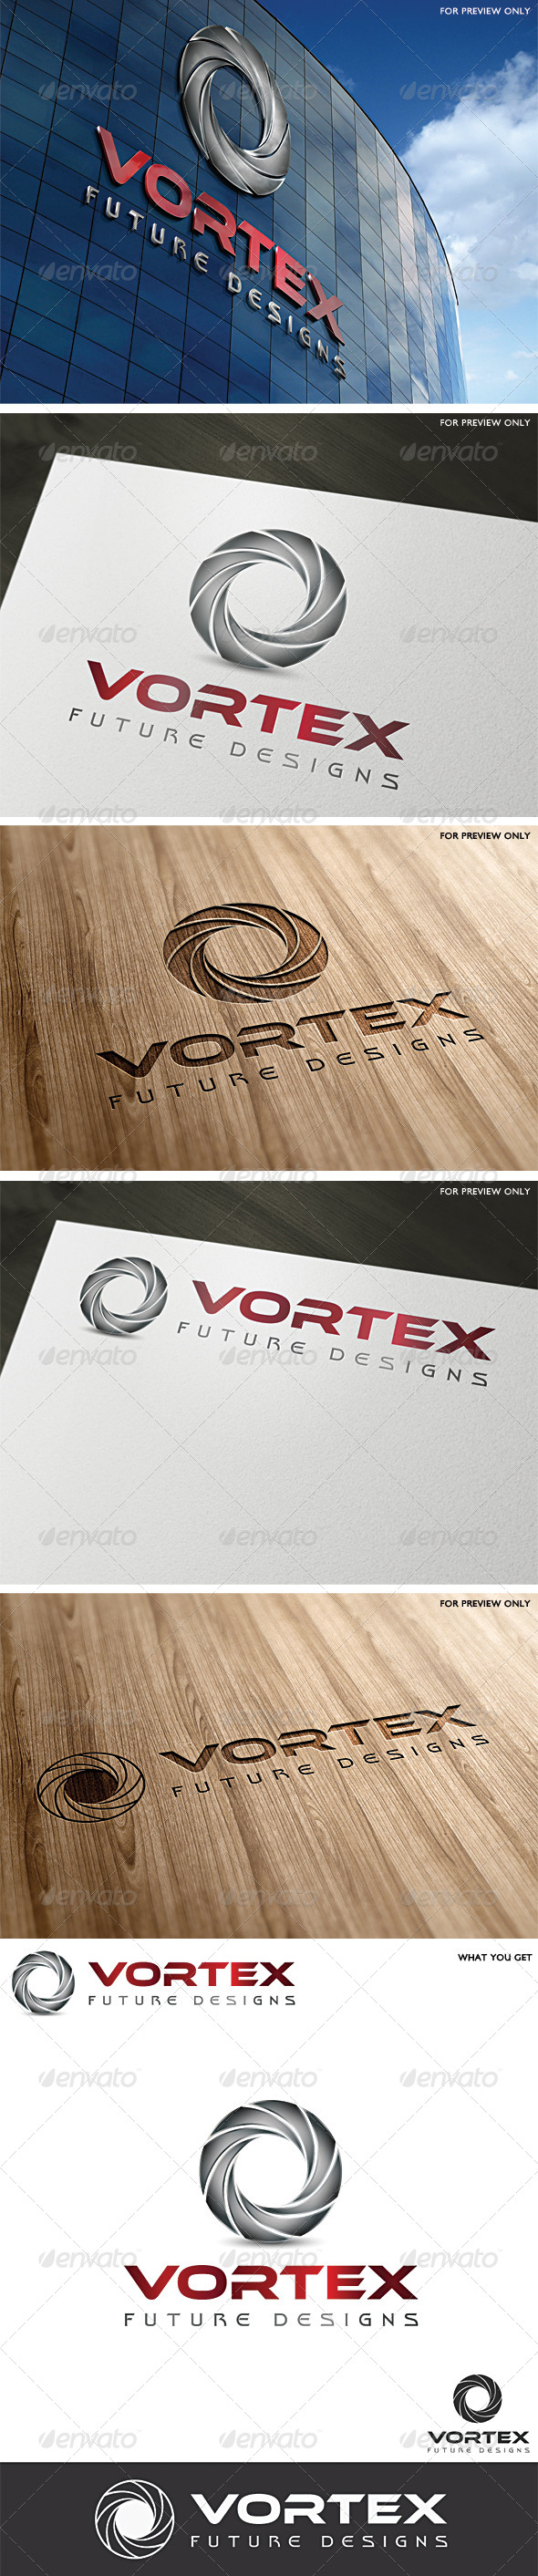 Vortex Logo Template - Vector Abstract